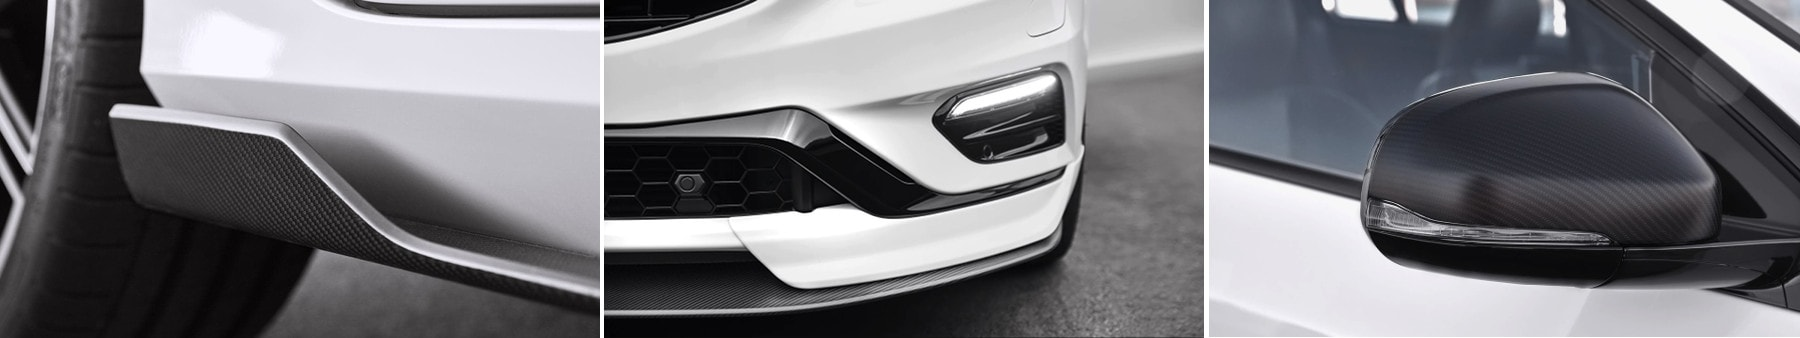 Volvo Polestar side skirt, mirror cap and front splitter